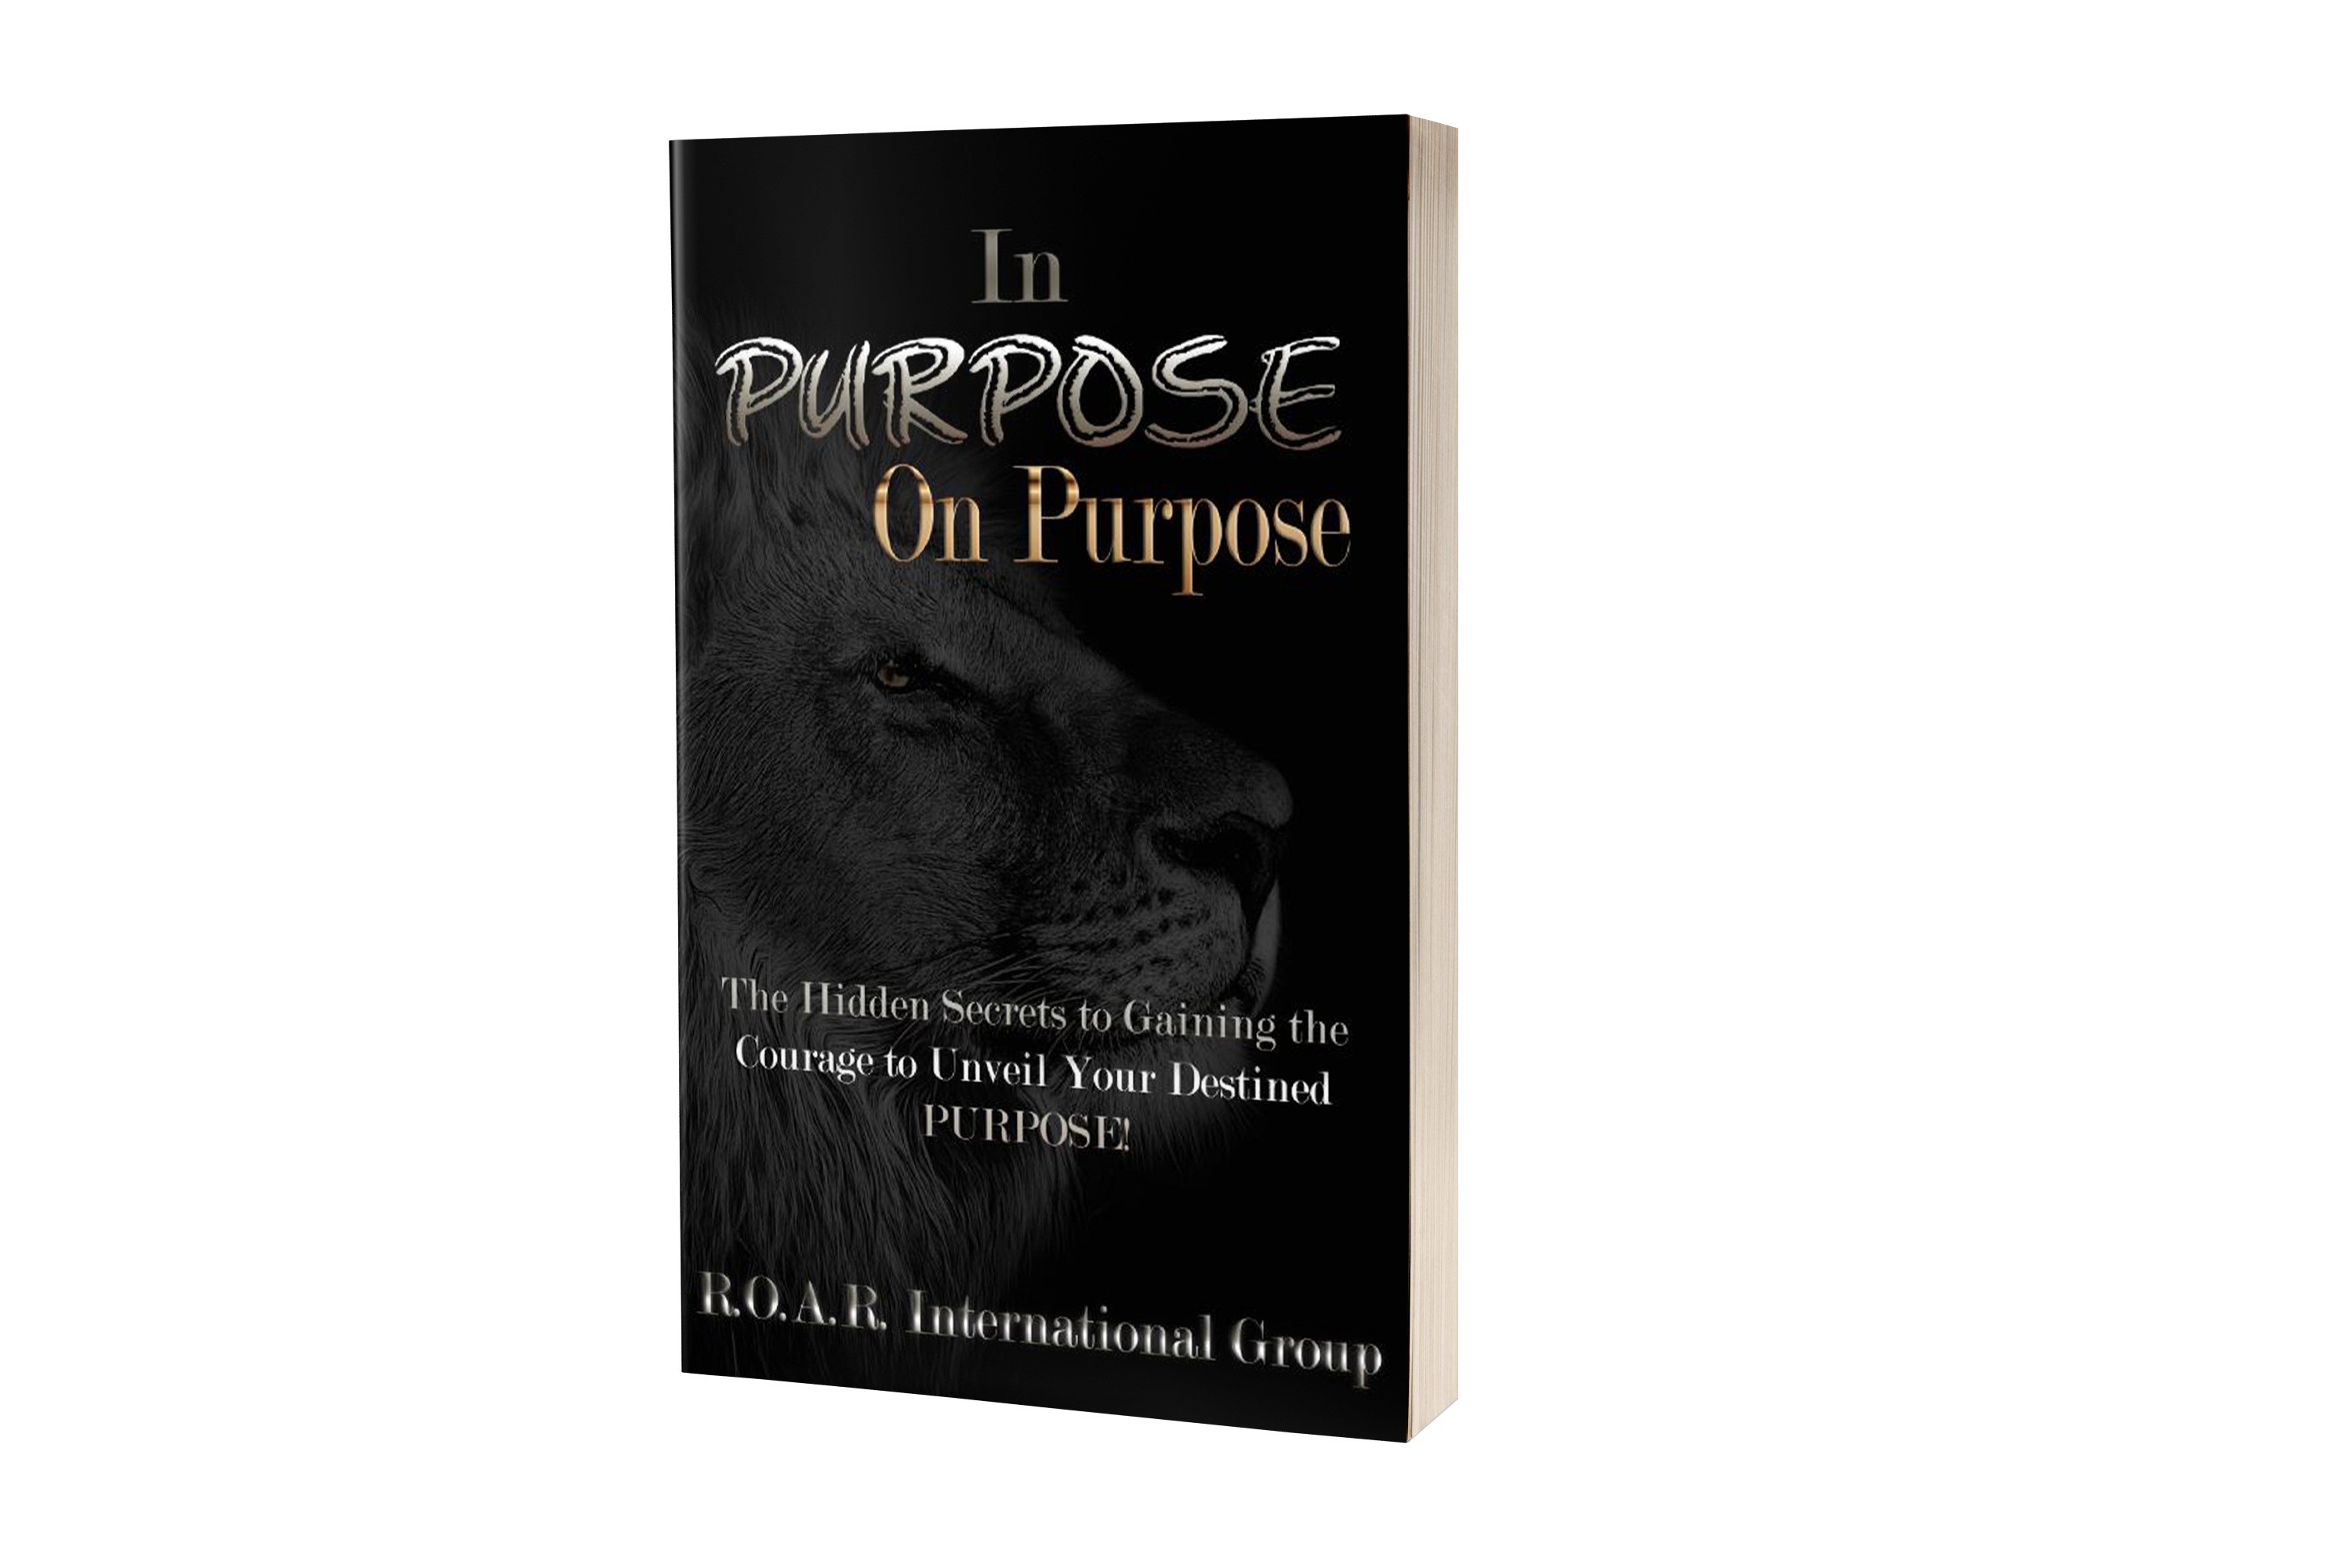 In PURPOSE on Purpose Book